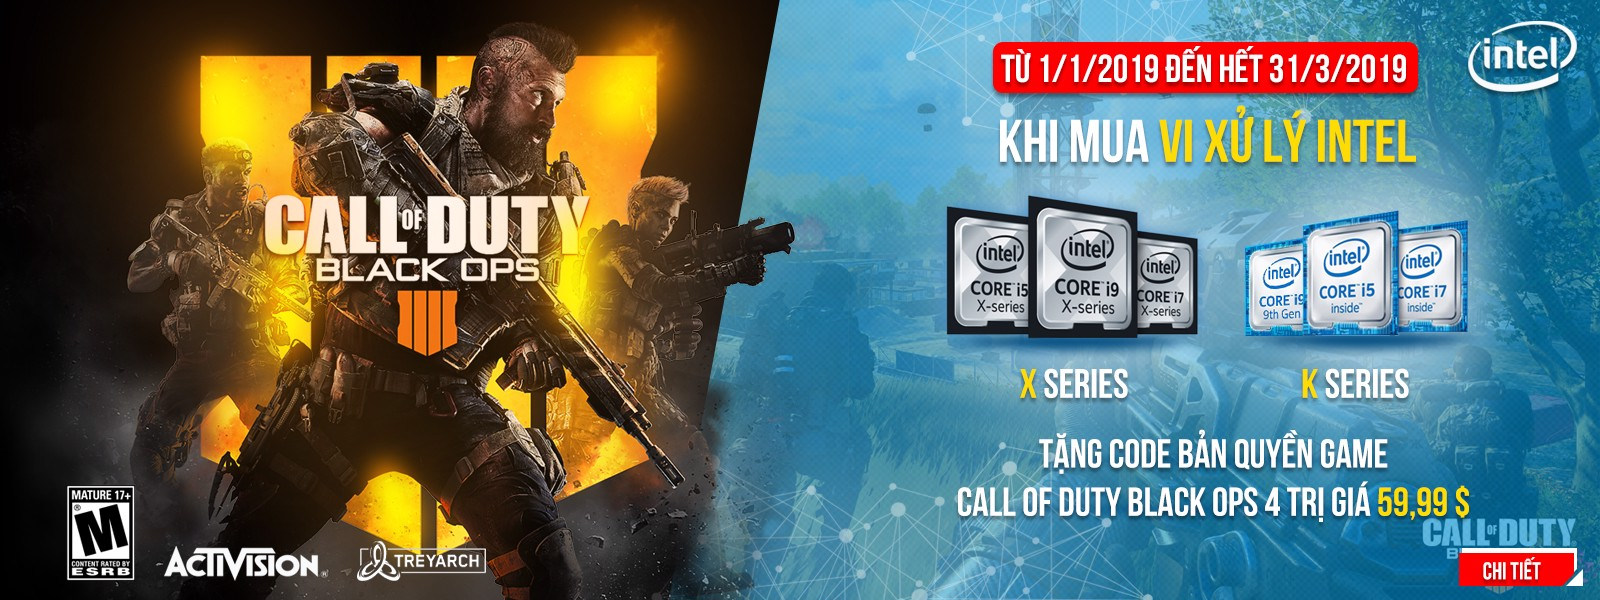 Tặng Code game Call Of Duty: Black Ops 4 khi mua Laptop MSI